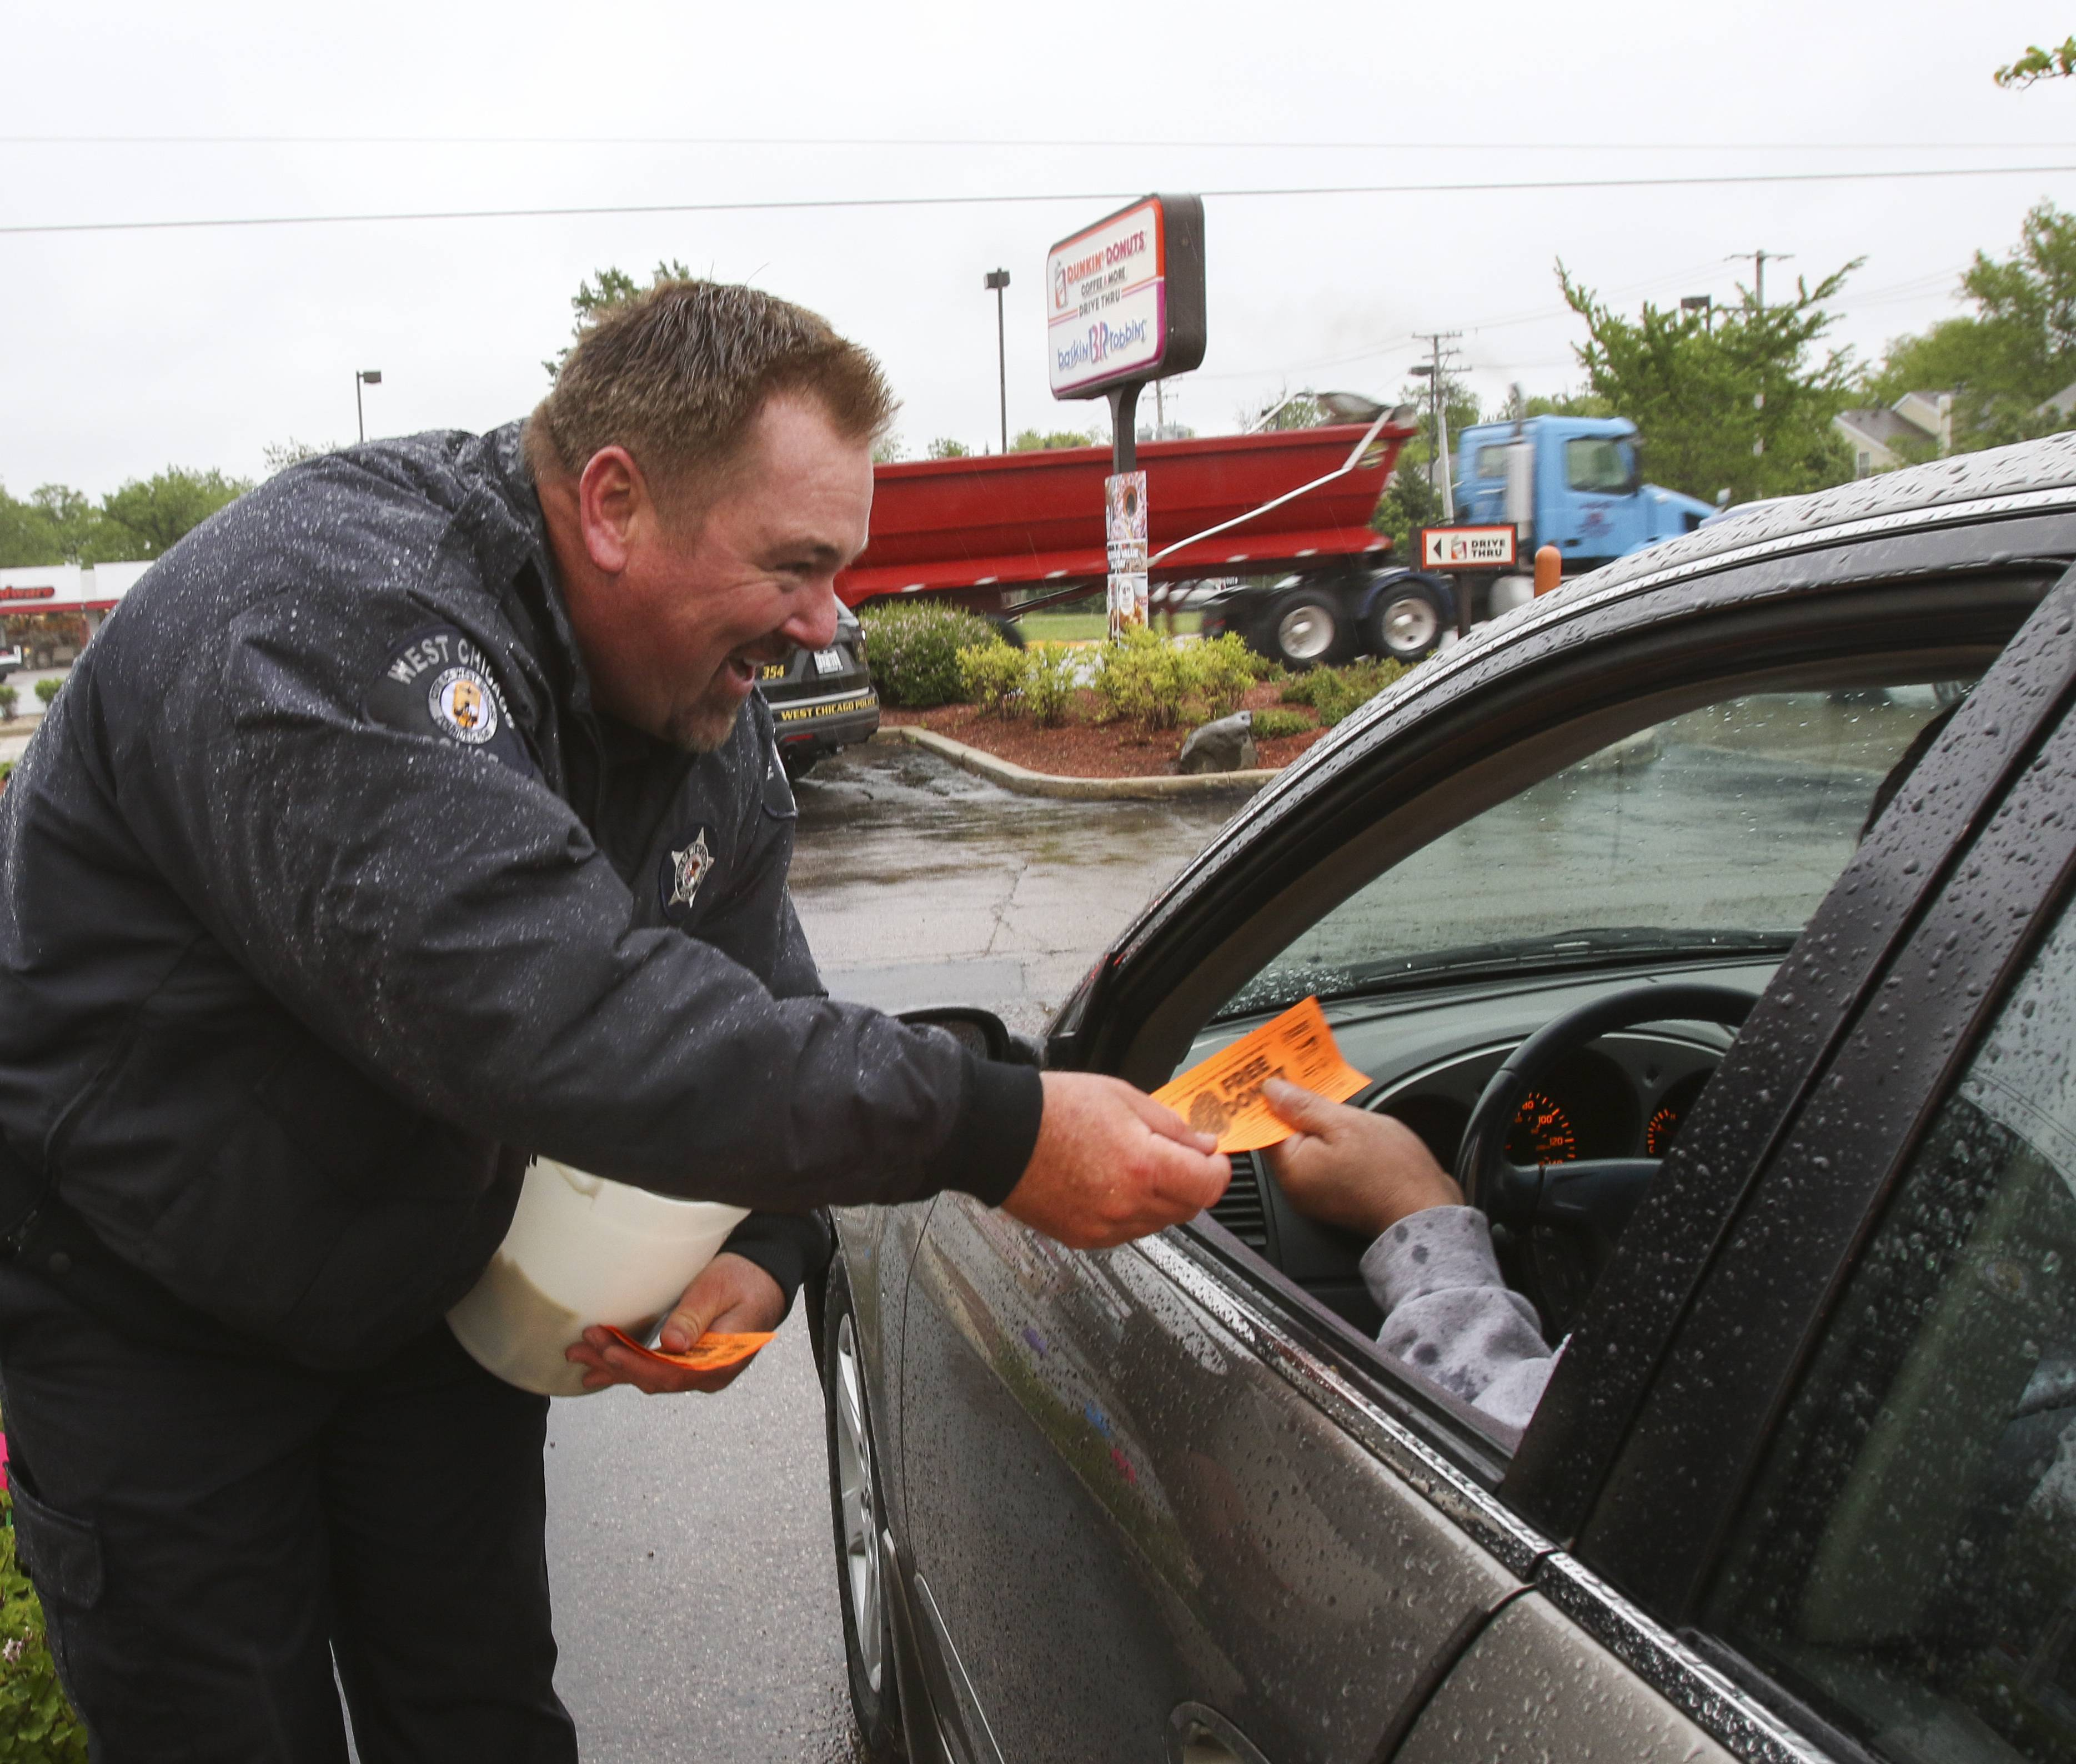 West Chicago Detective Robbie Peterson gives away a coupon for a doughnut as he helps collect money for Special Olympics during the annual Cop on a Rooftop fundraiser at Dunkin' Donuts in West Chicago.